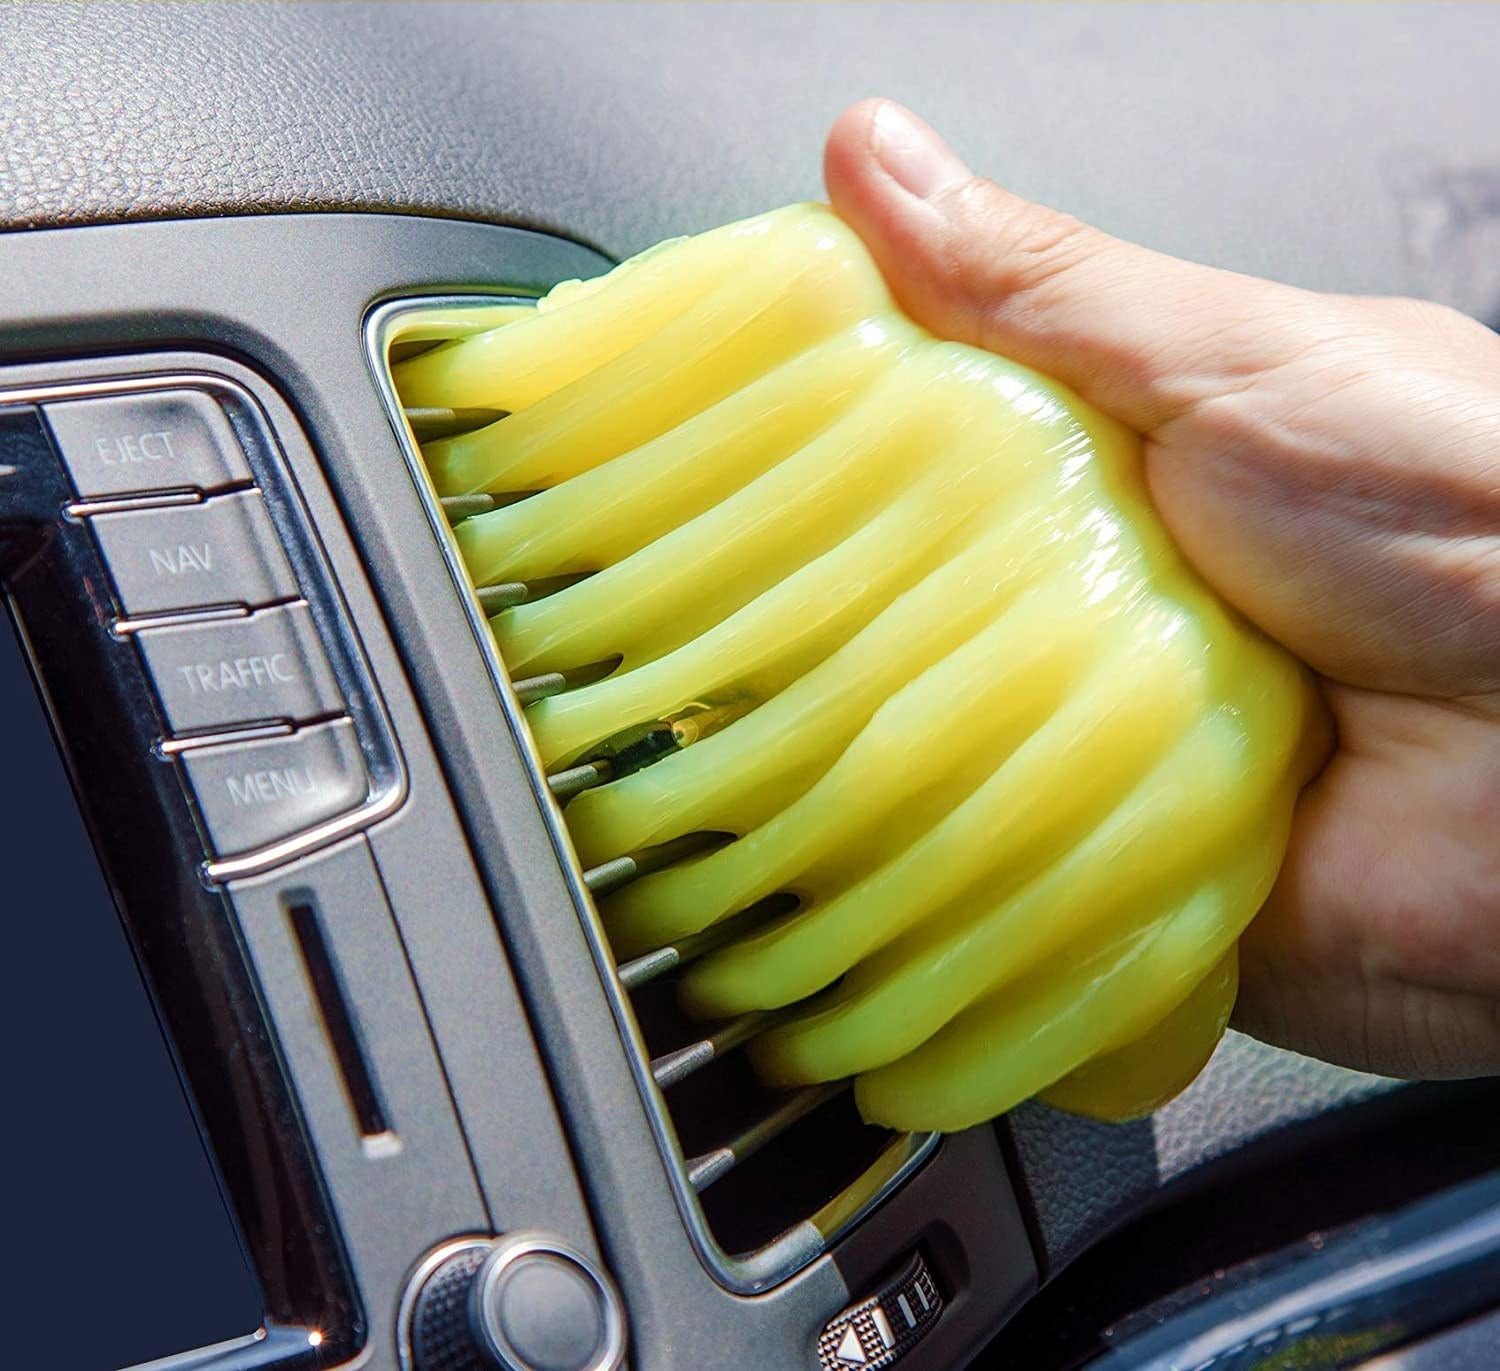 the putty cleaning the air vent inside the car